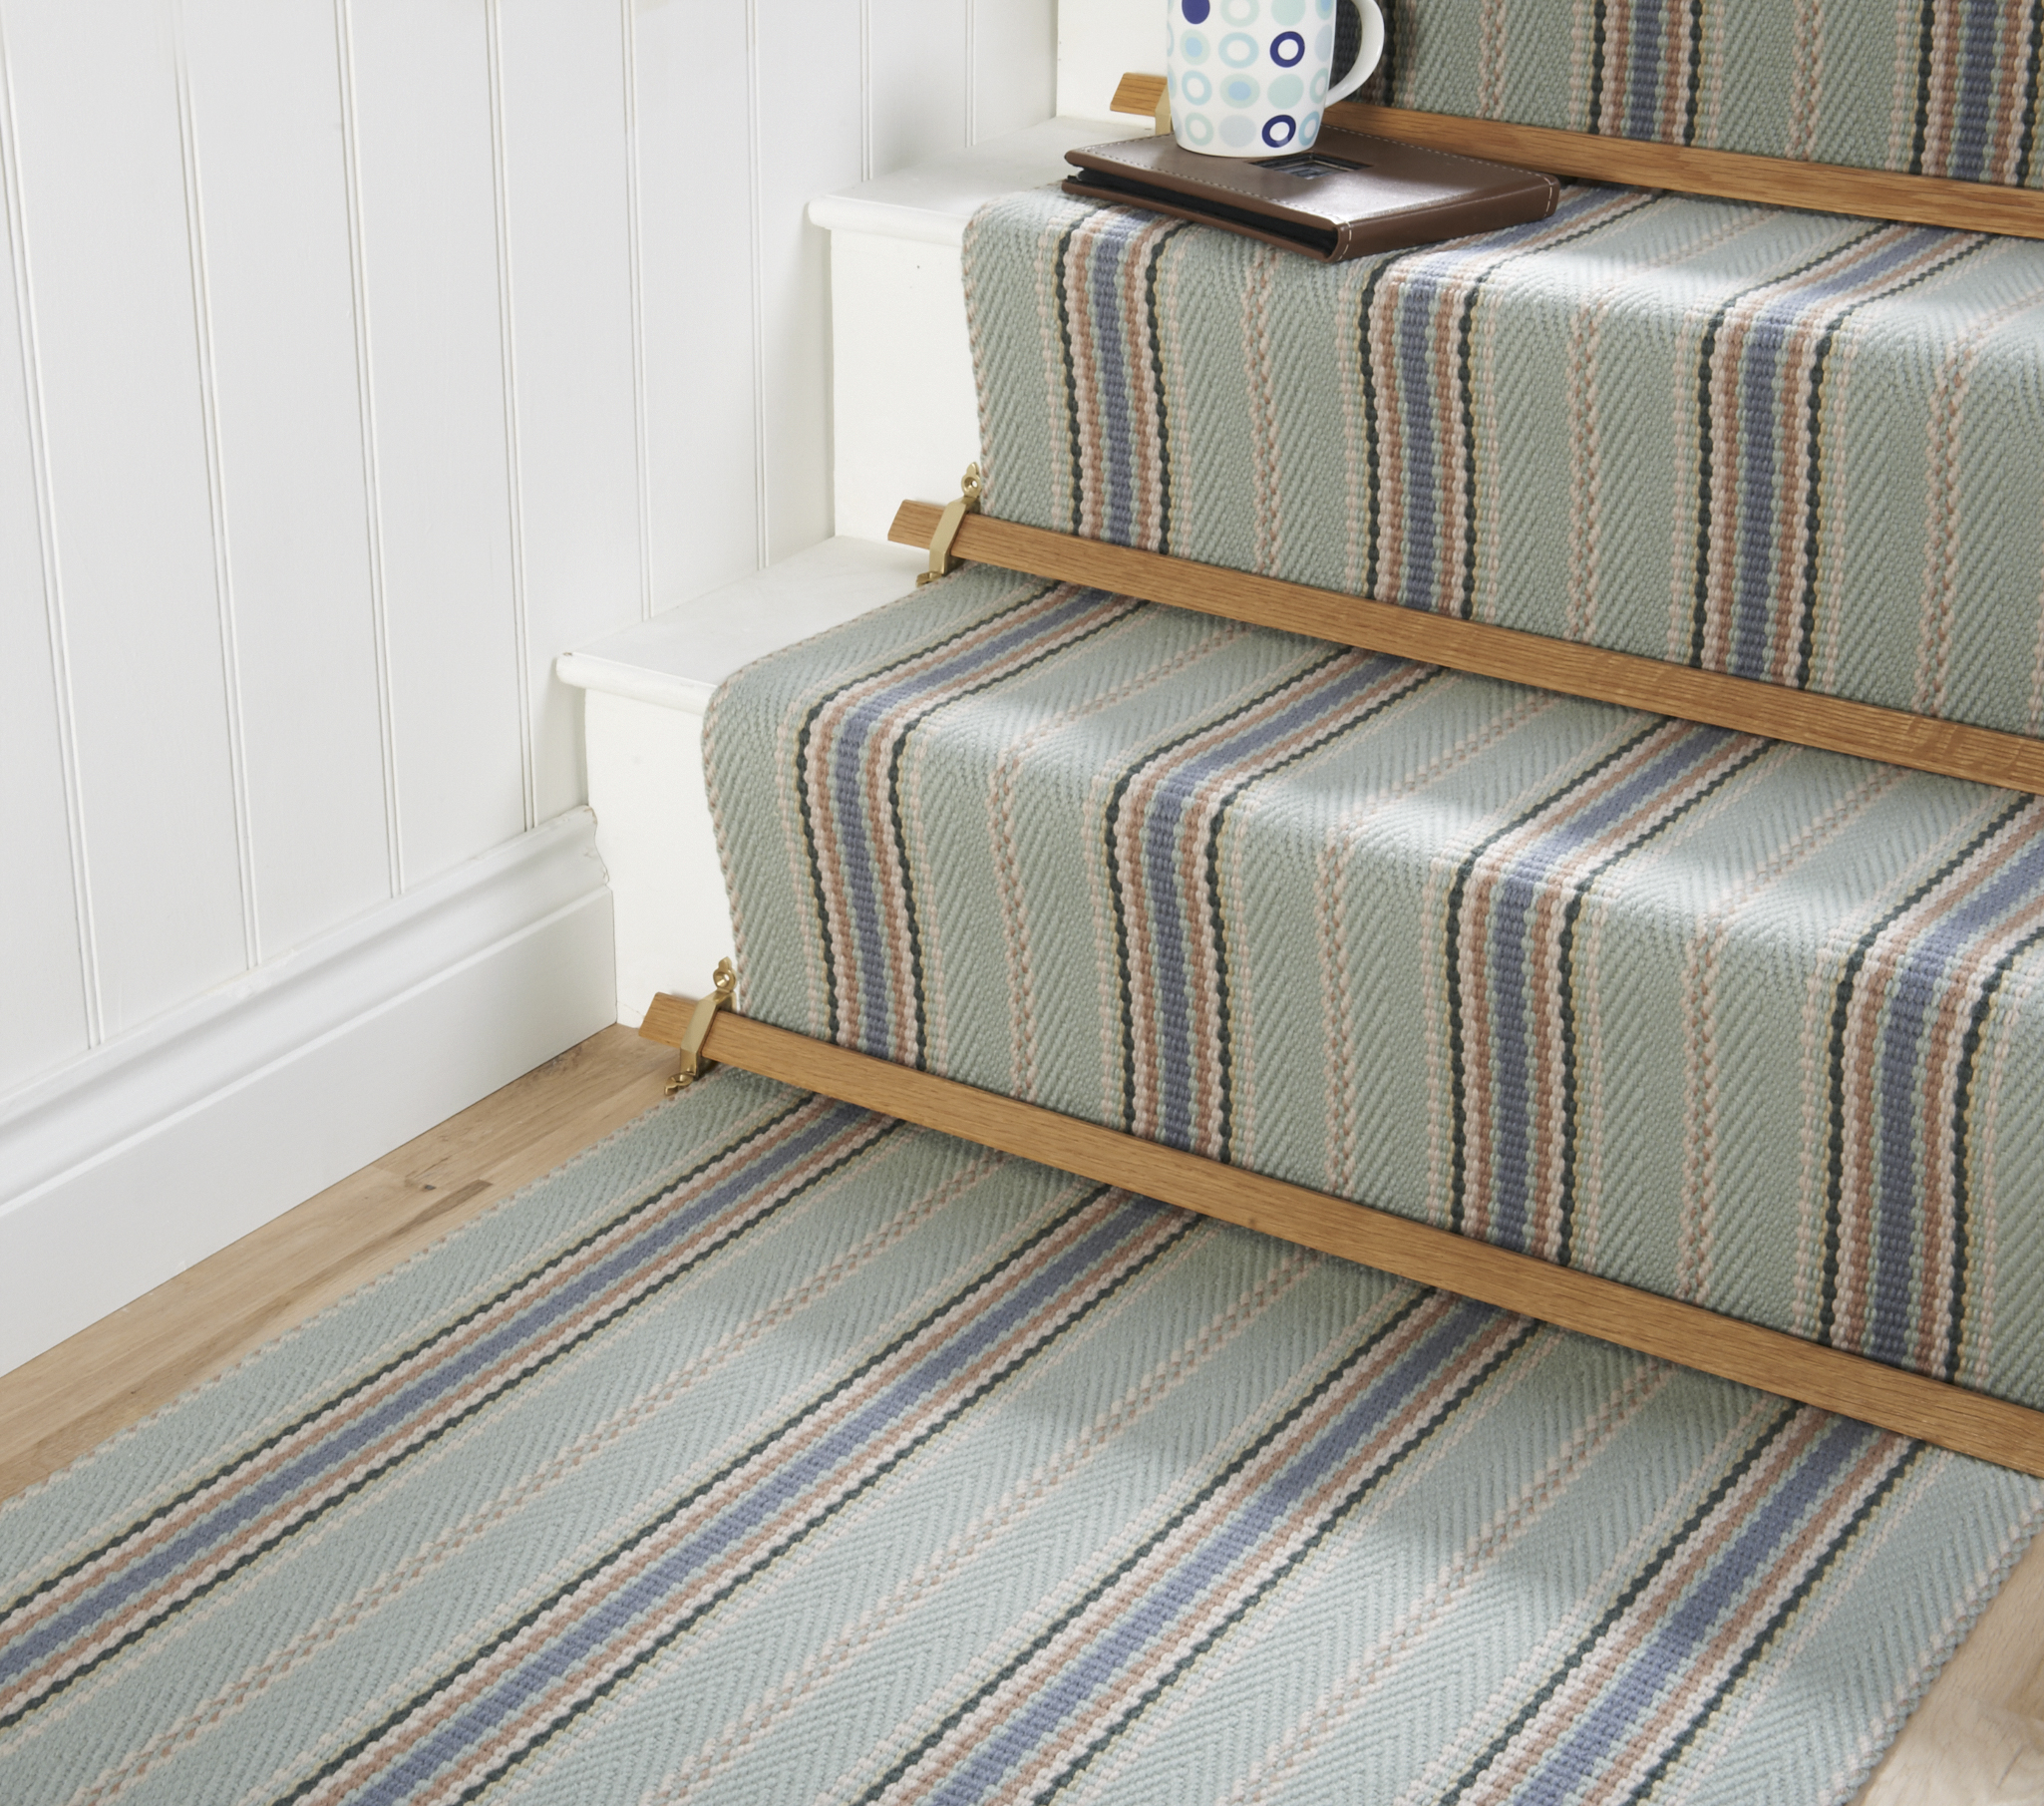 carpet runner for stairs ideas photo - 2